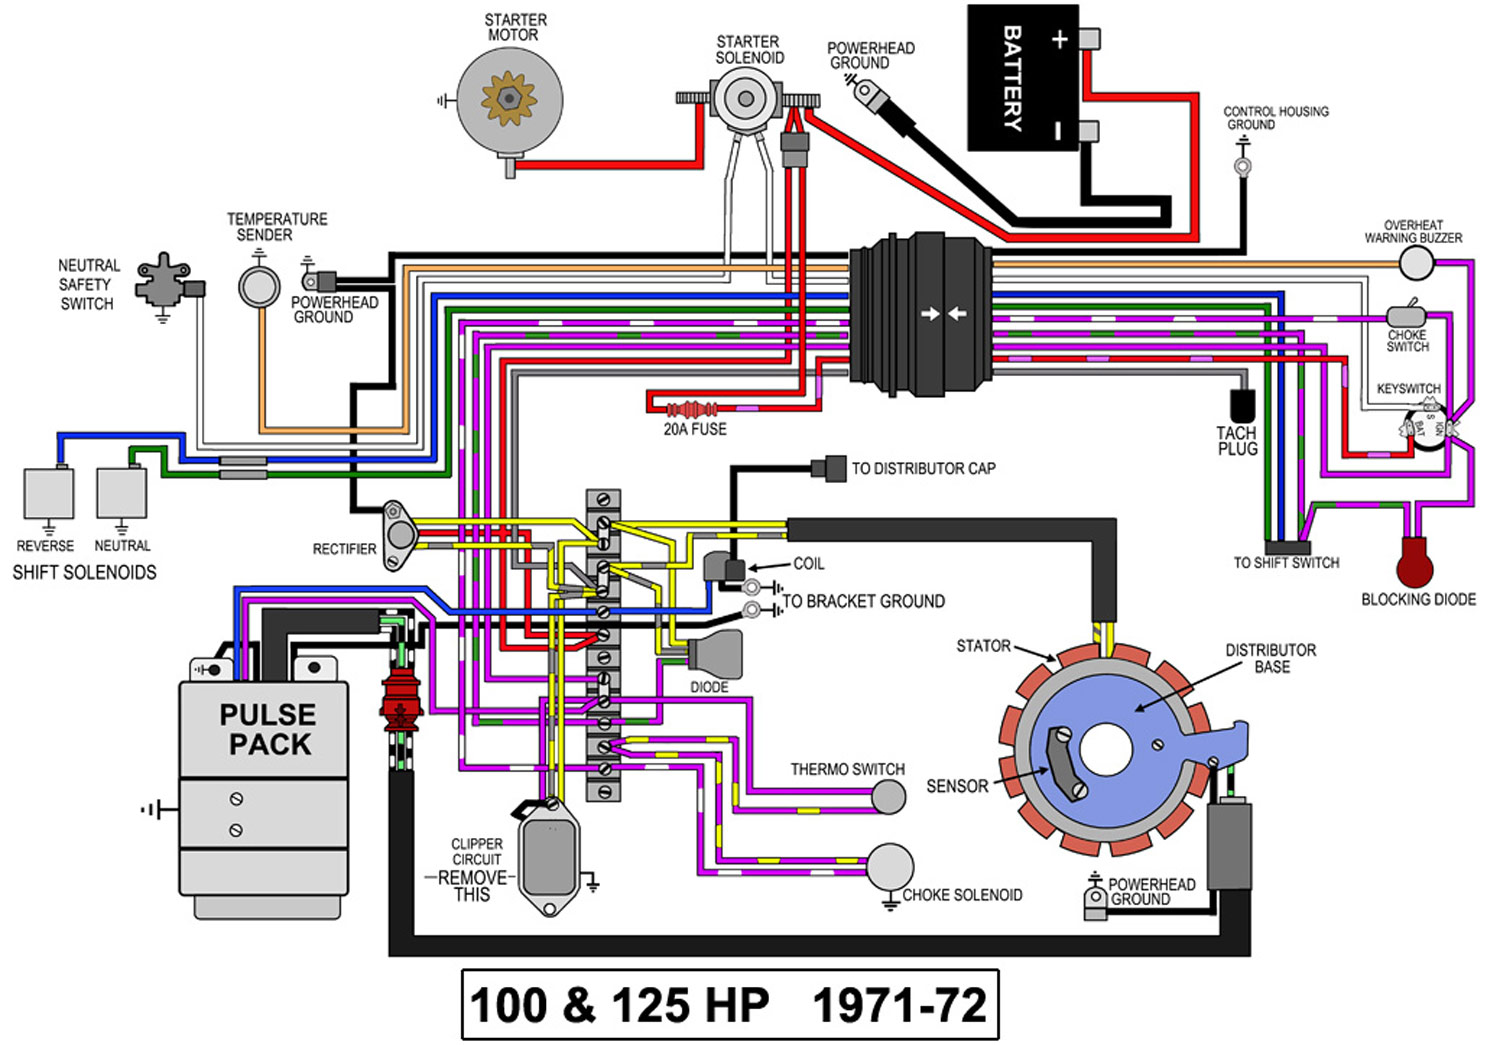 small resolution of 1975 johnson 70 wire diagram